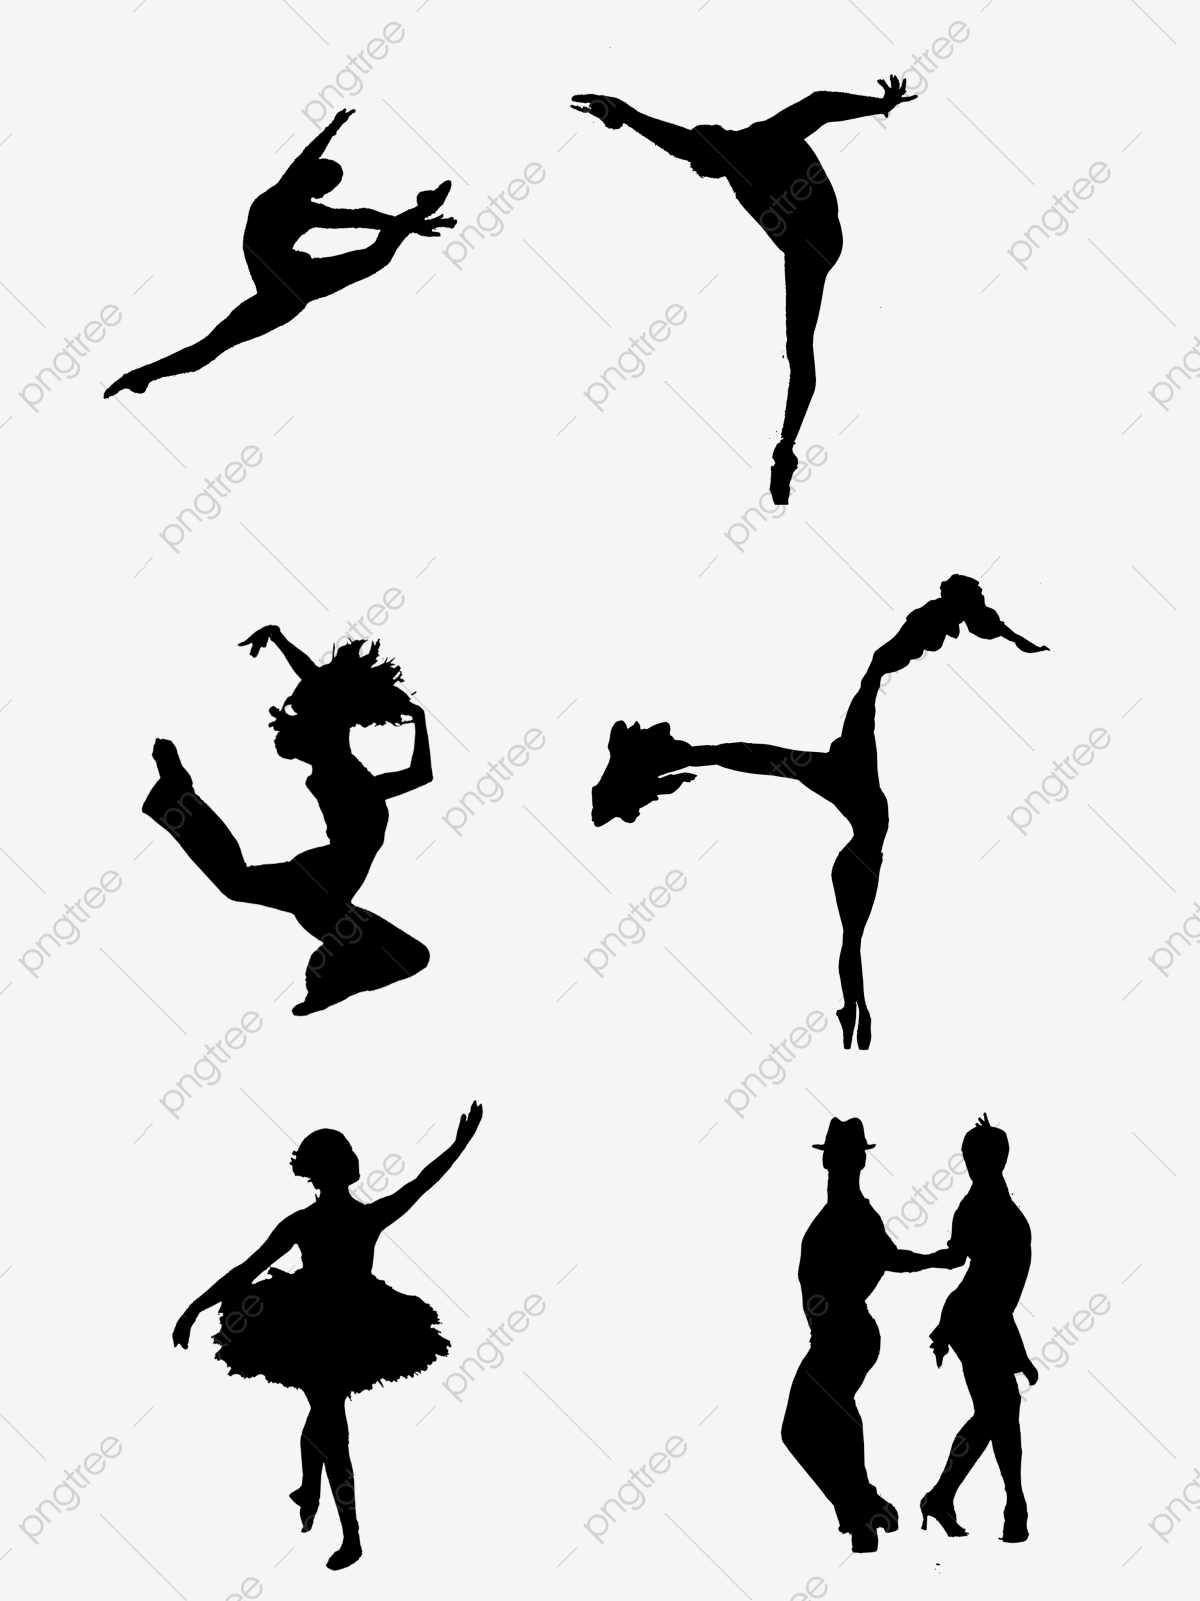 Free Dancing Silhouettes Png Vector Psd And Clipart With Transparent Background For Free Download Pngtree